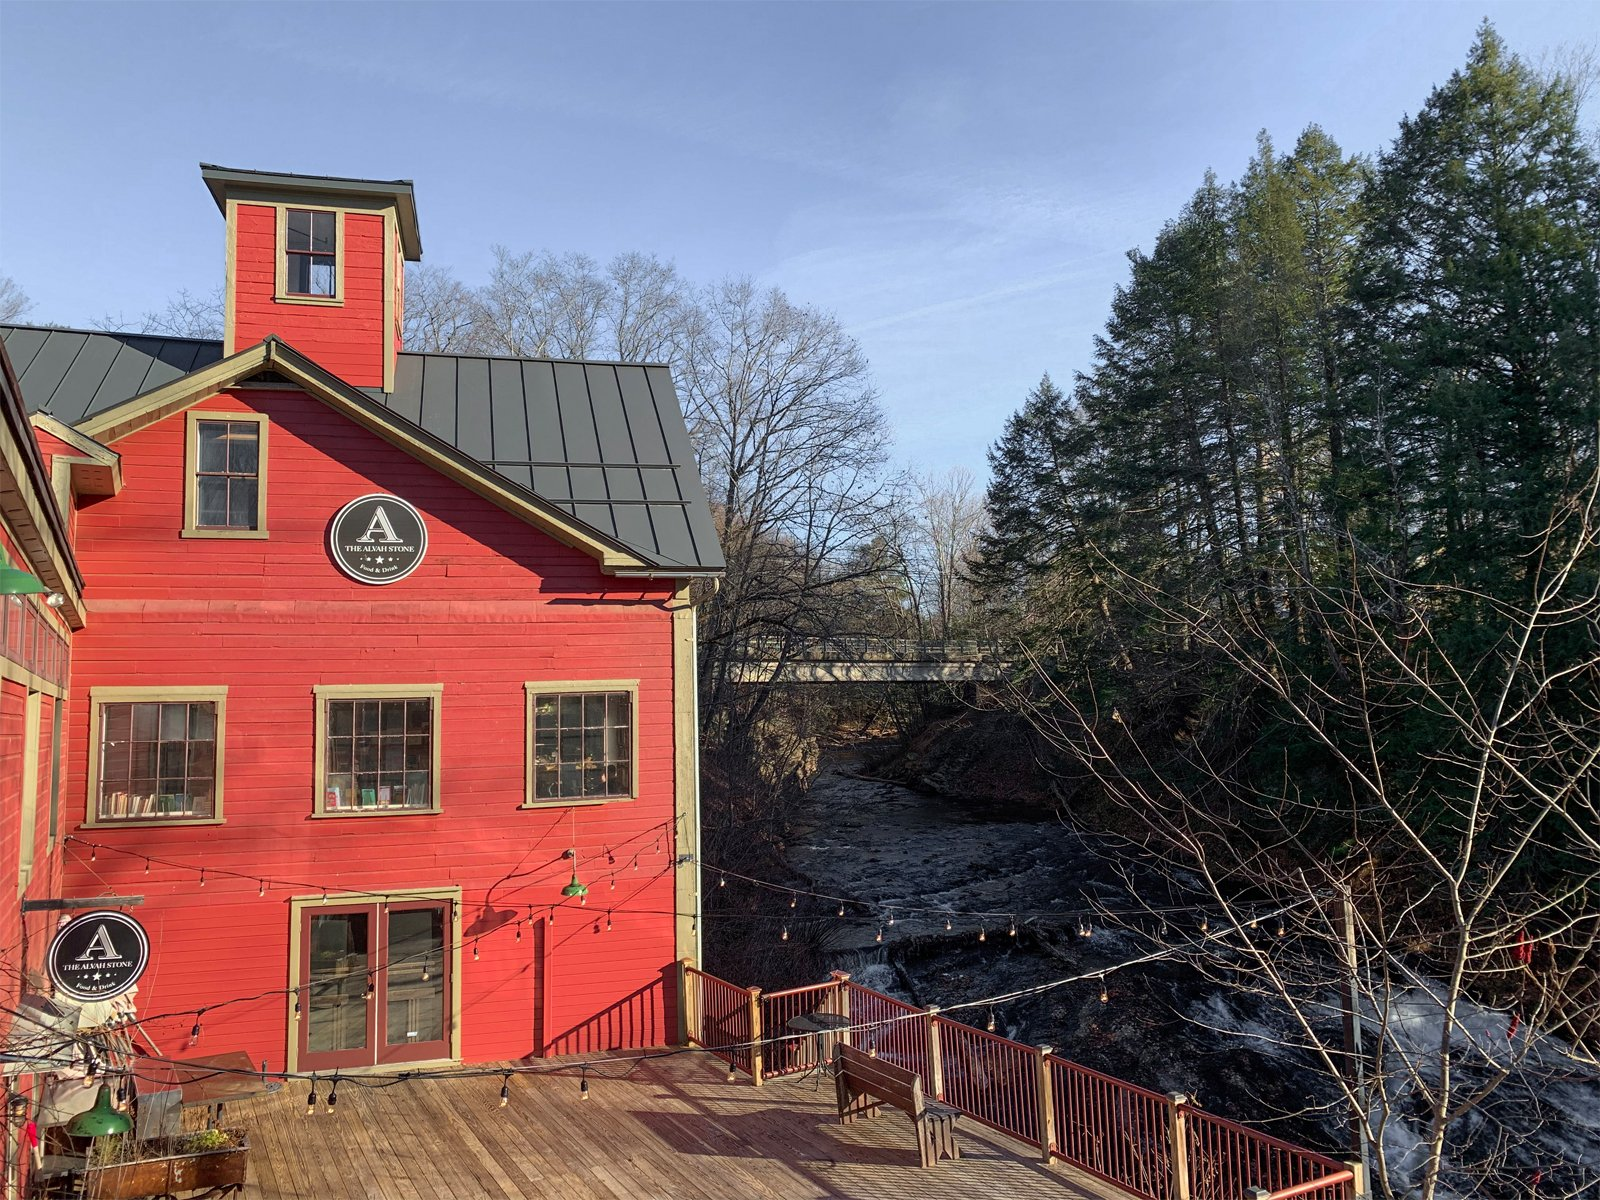 a view of the river next to the Montague Bookmill in Montague, MA